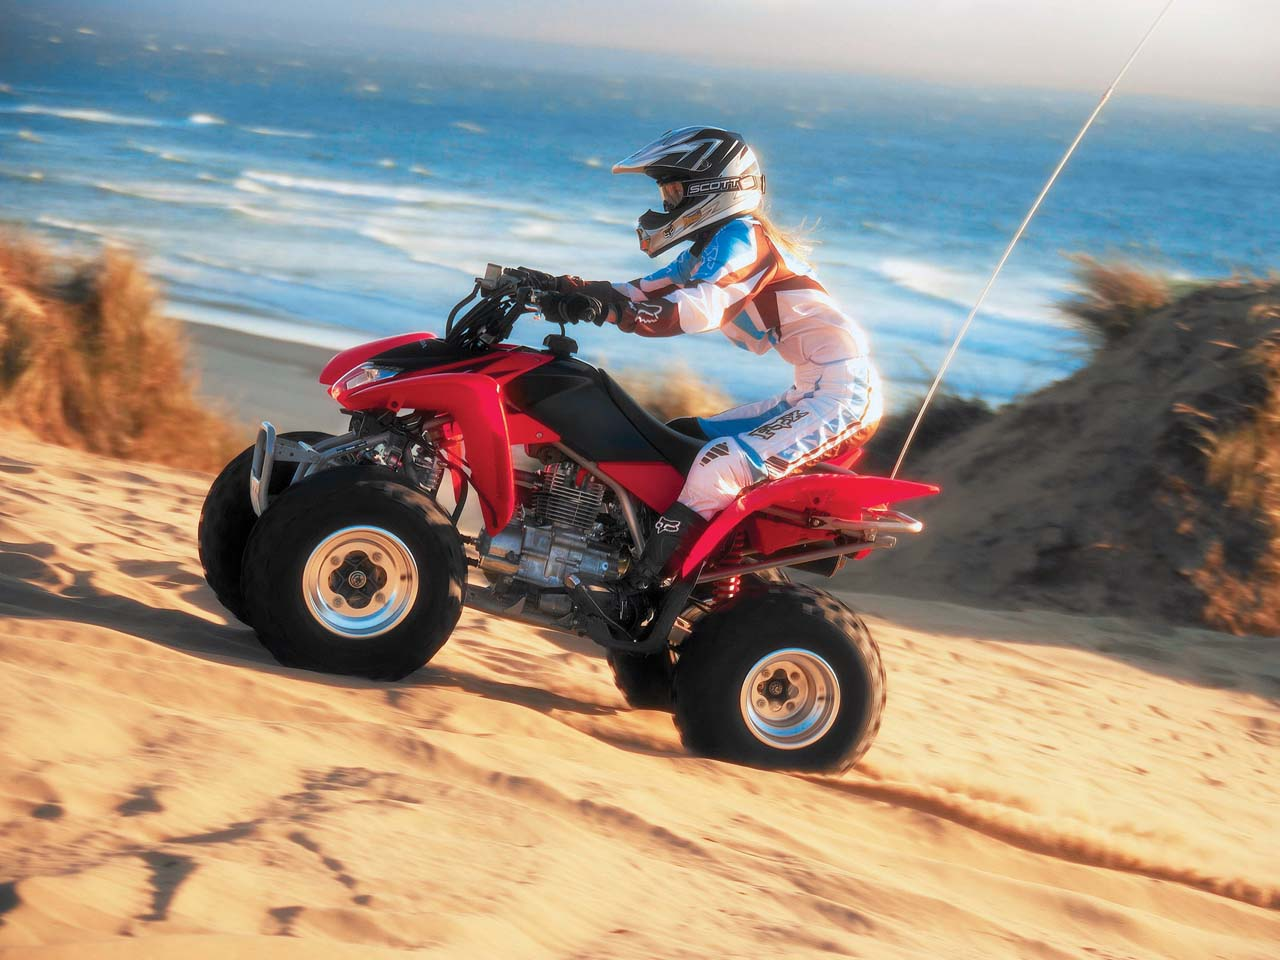 2006 Yamaha Raptor Wiring Diagram Schematic further 97 Honda Foreman Wiring Diagram moreover Honda Trx350 Fourtrax 4x4 Honda Trx350d Foreman 4x4 Service Repair Manual 1986 1987 1988 1989 Download likewise Honda Fourtrax 300 Wiring Diagram further 590323 Quadriciclo Honda Fourtrax 350cc. on trx300 wiring diagram